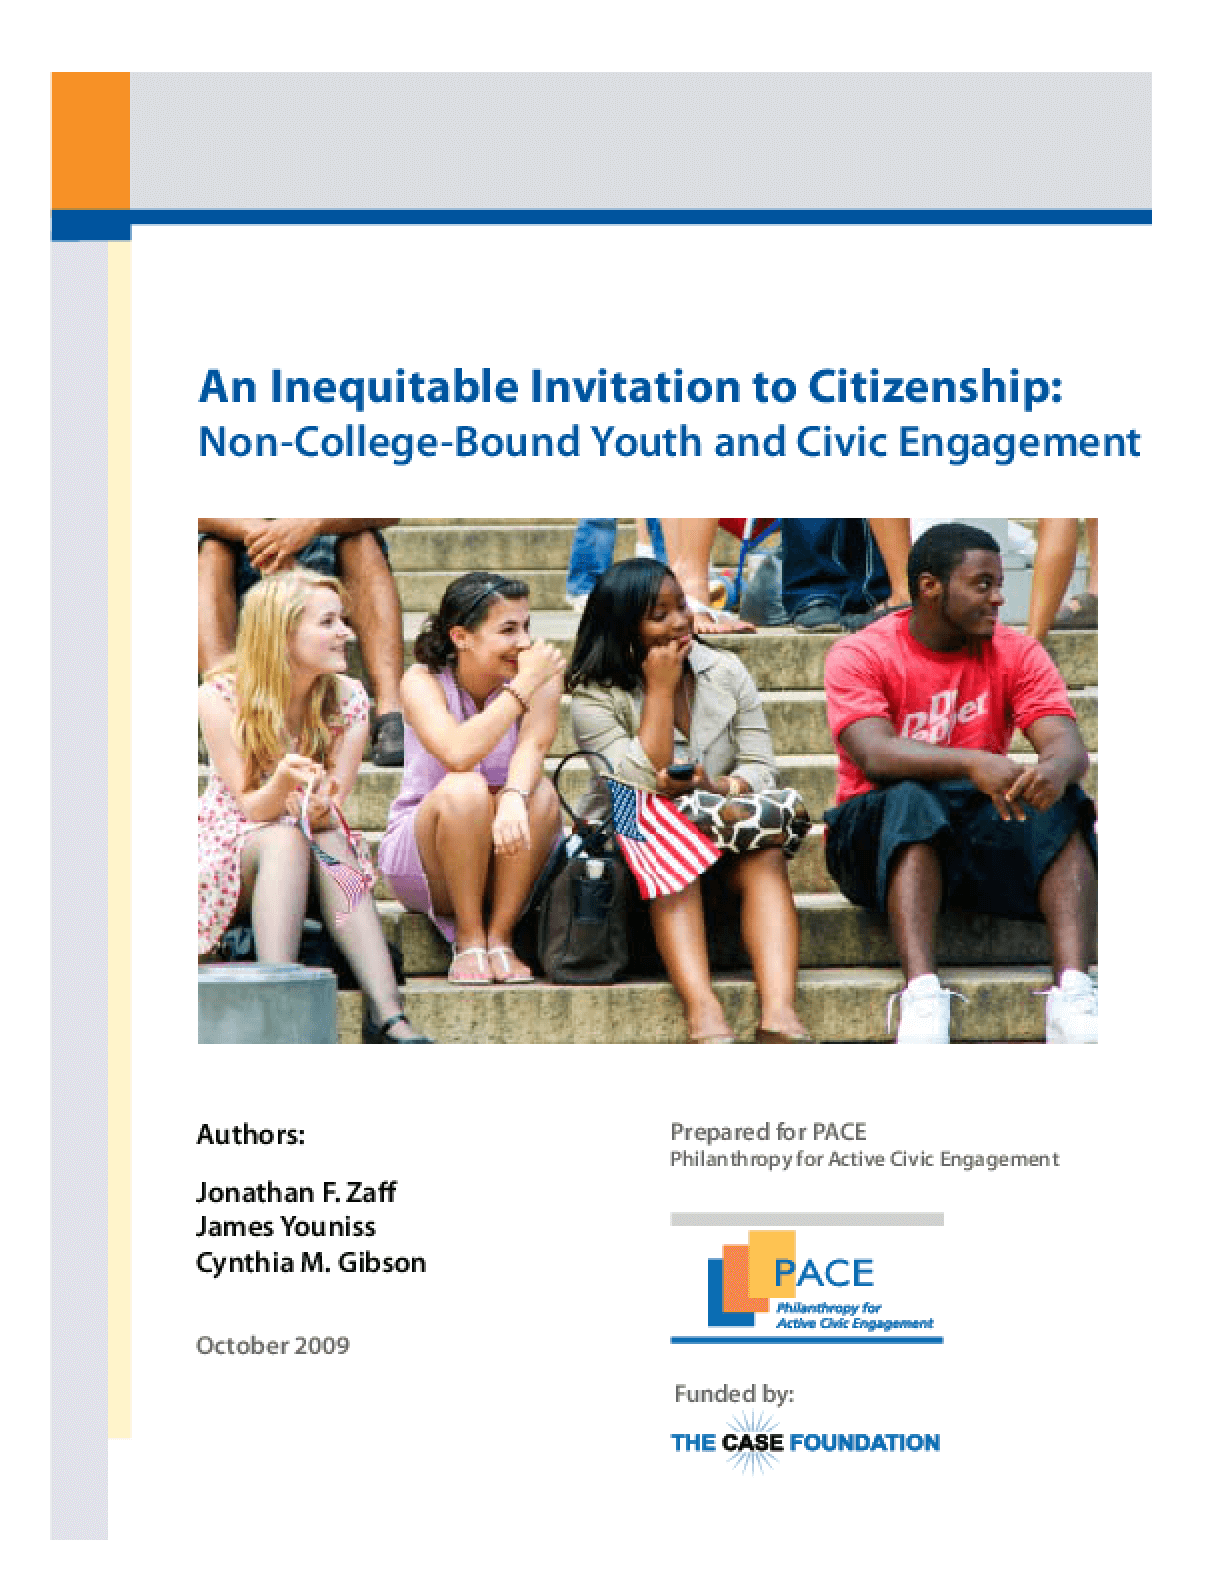 An Inequitable Invitation to Citizenship: Non-College-Bound Youth and Civic Engagement